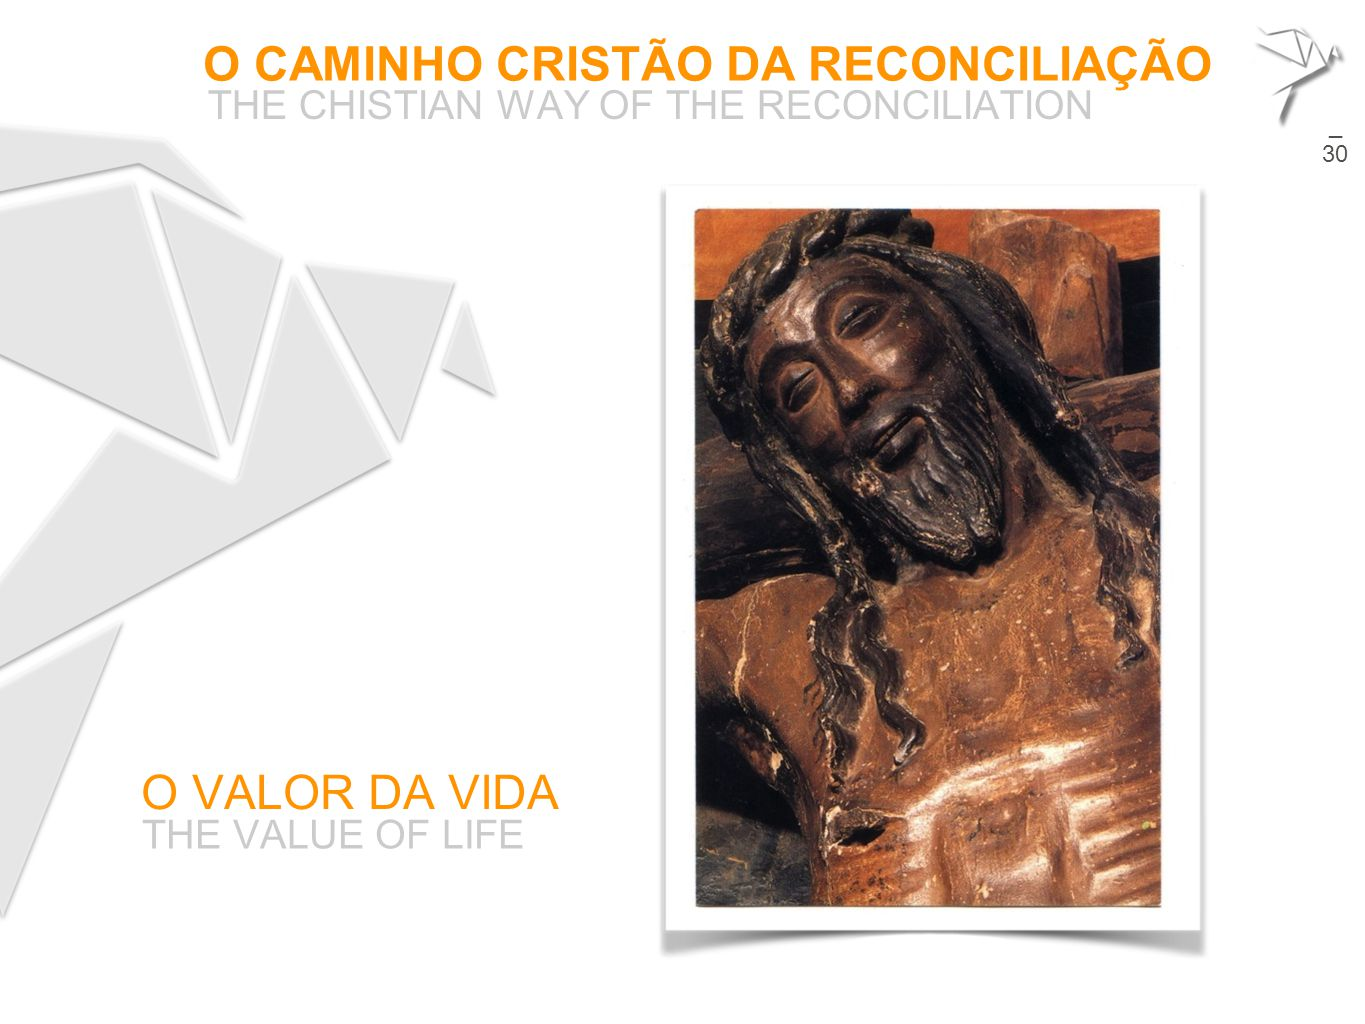 O CAMINHO CRISTÃO DA RECONCILIAÇÃO THE CHISTIAN WAY OF THE RECONCILIATION 17 O VALOR DA VIDA THE VALUE OF LIFE  _ 30